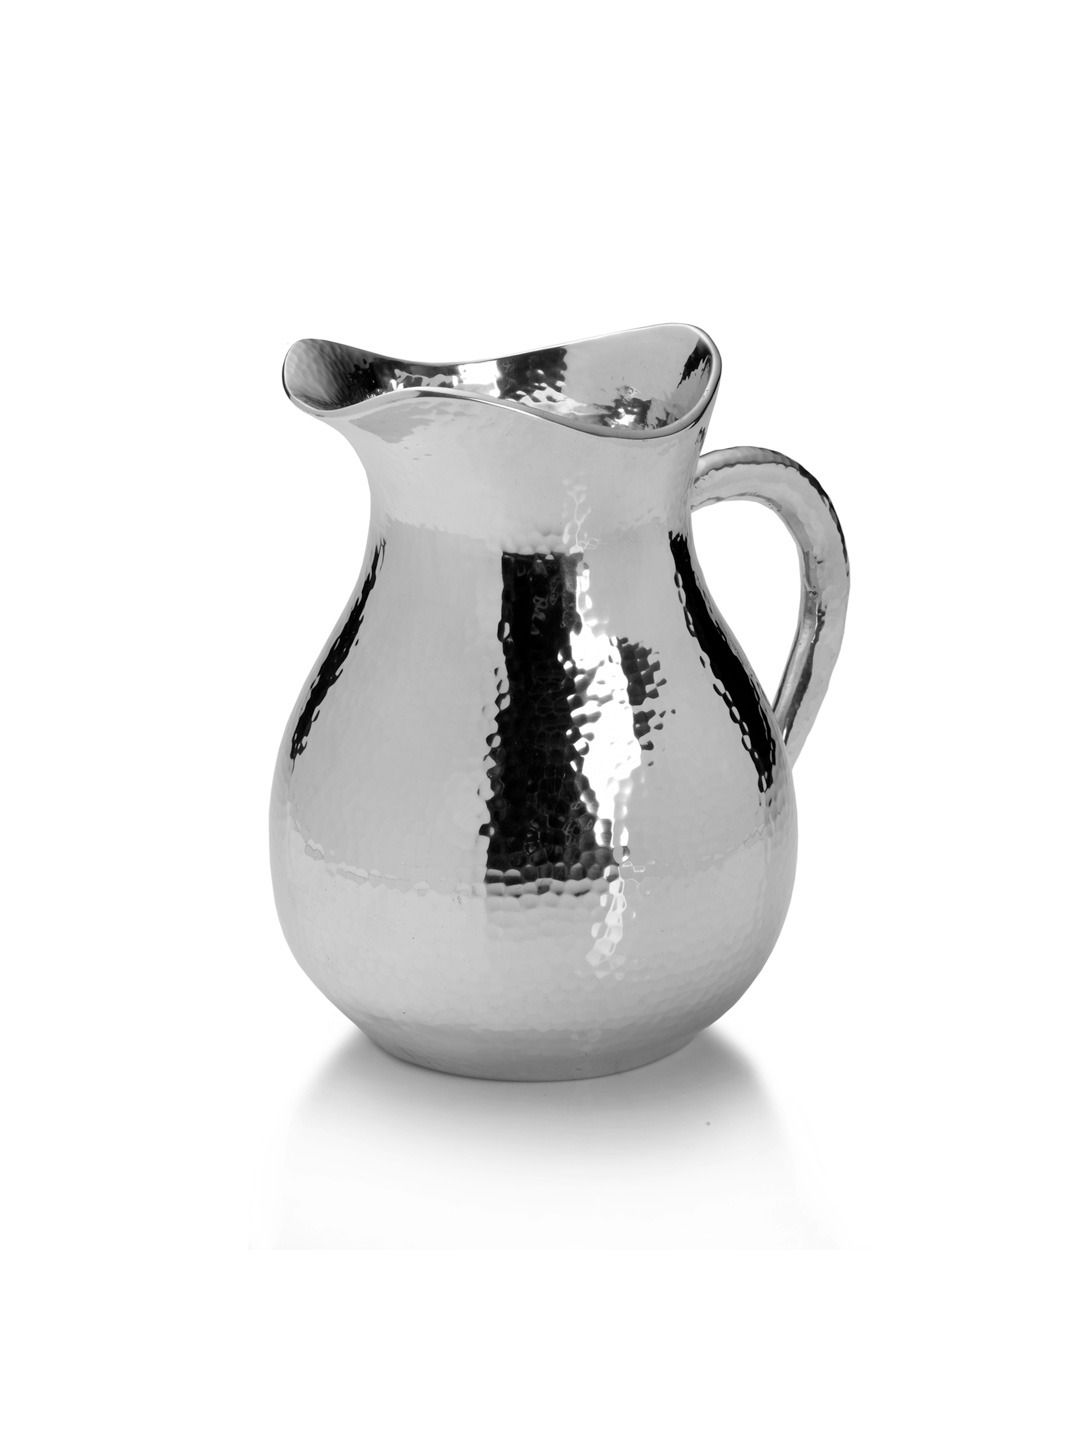 Hammersmith Pitcher By Towle Living Towle Pitcher Hammersmith